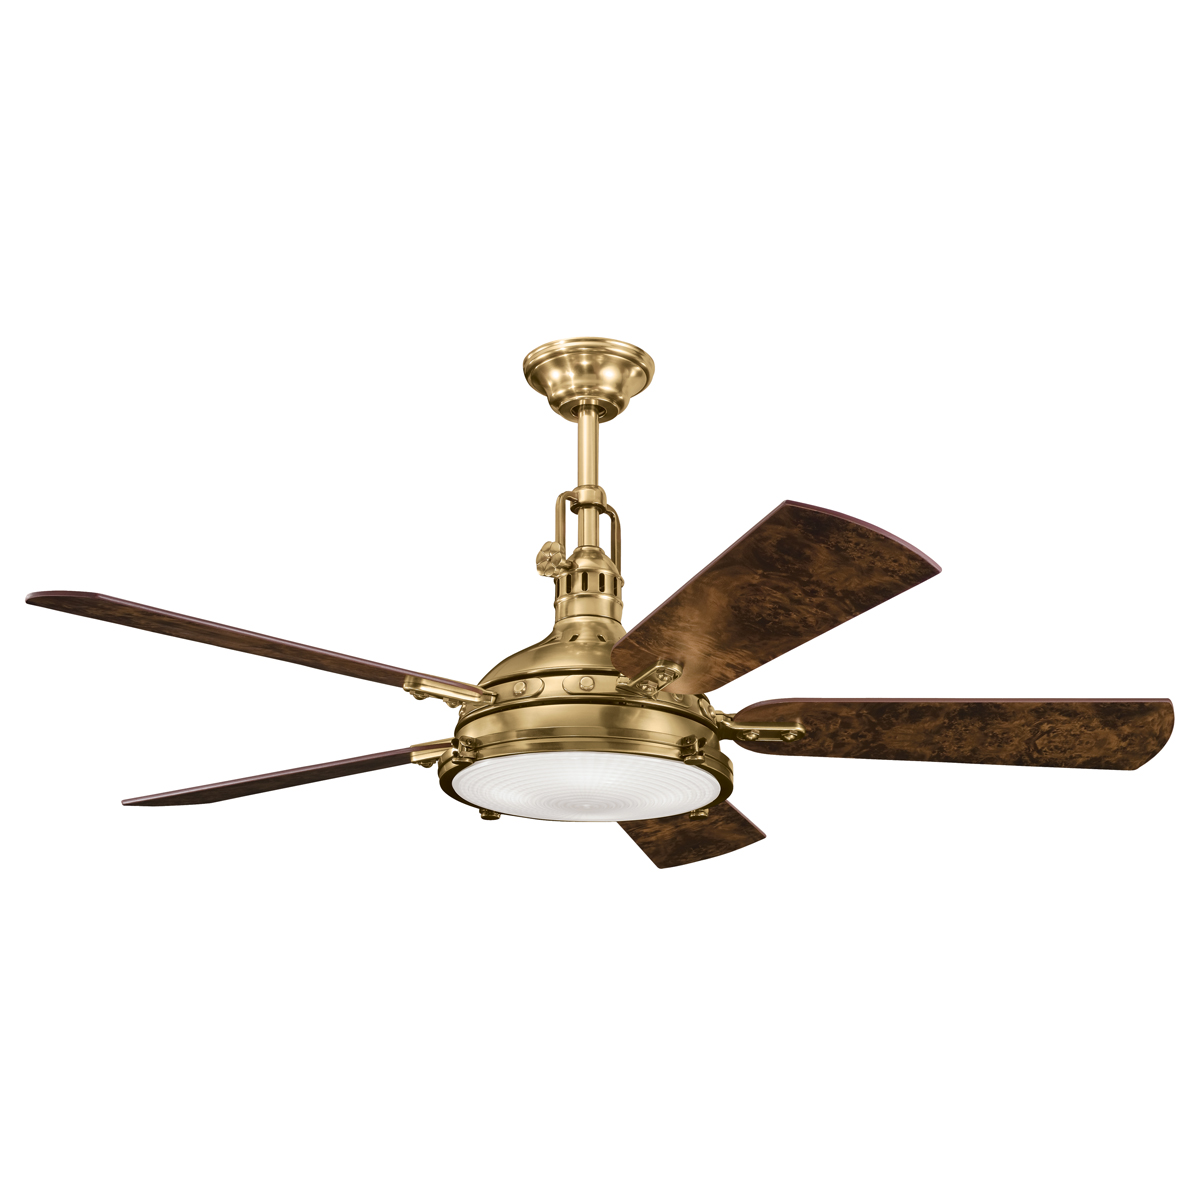 Hatteras Bay 56 Burnished Antique Brass Ceiling Fan With